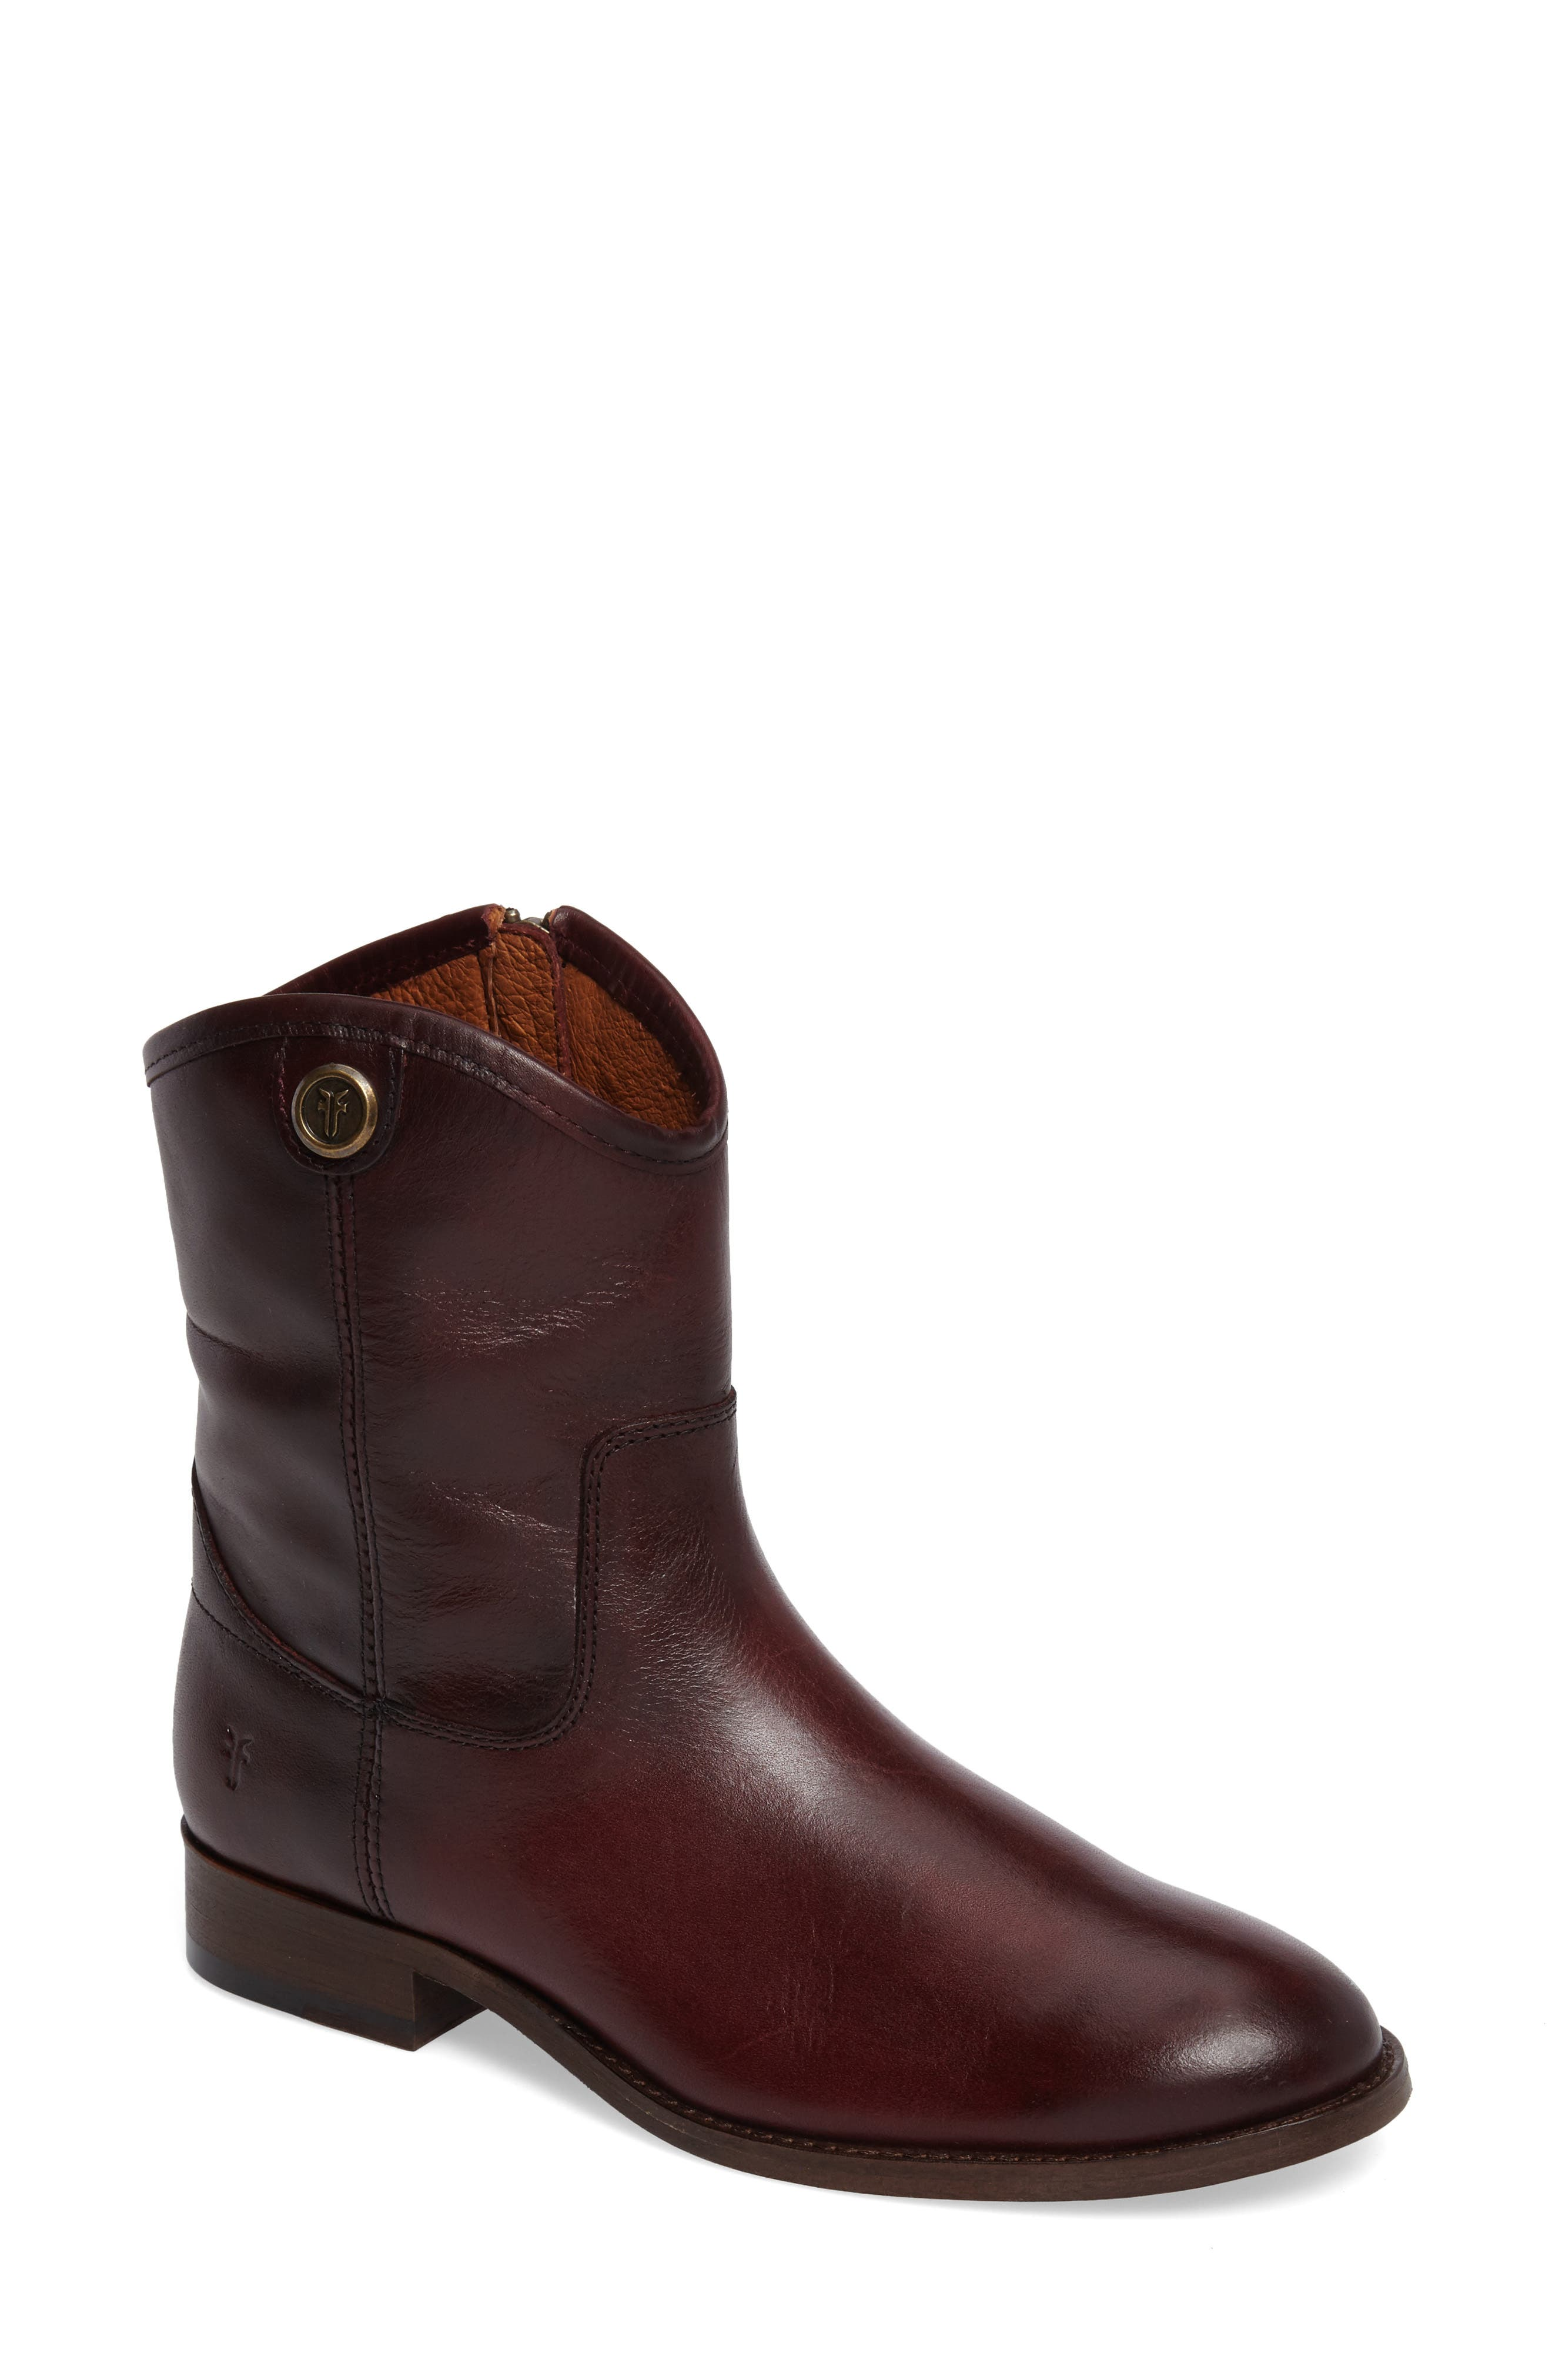 Melissa Short 2 Boot,                             Main thumbnail 1, color,                             Wine Leather